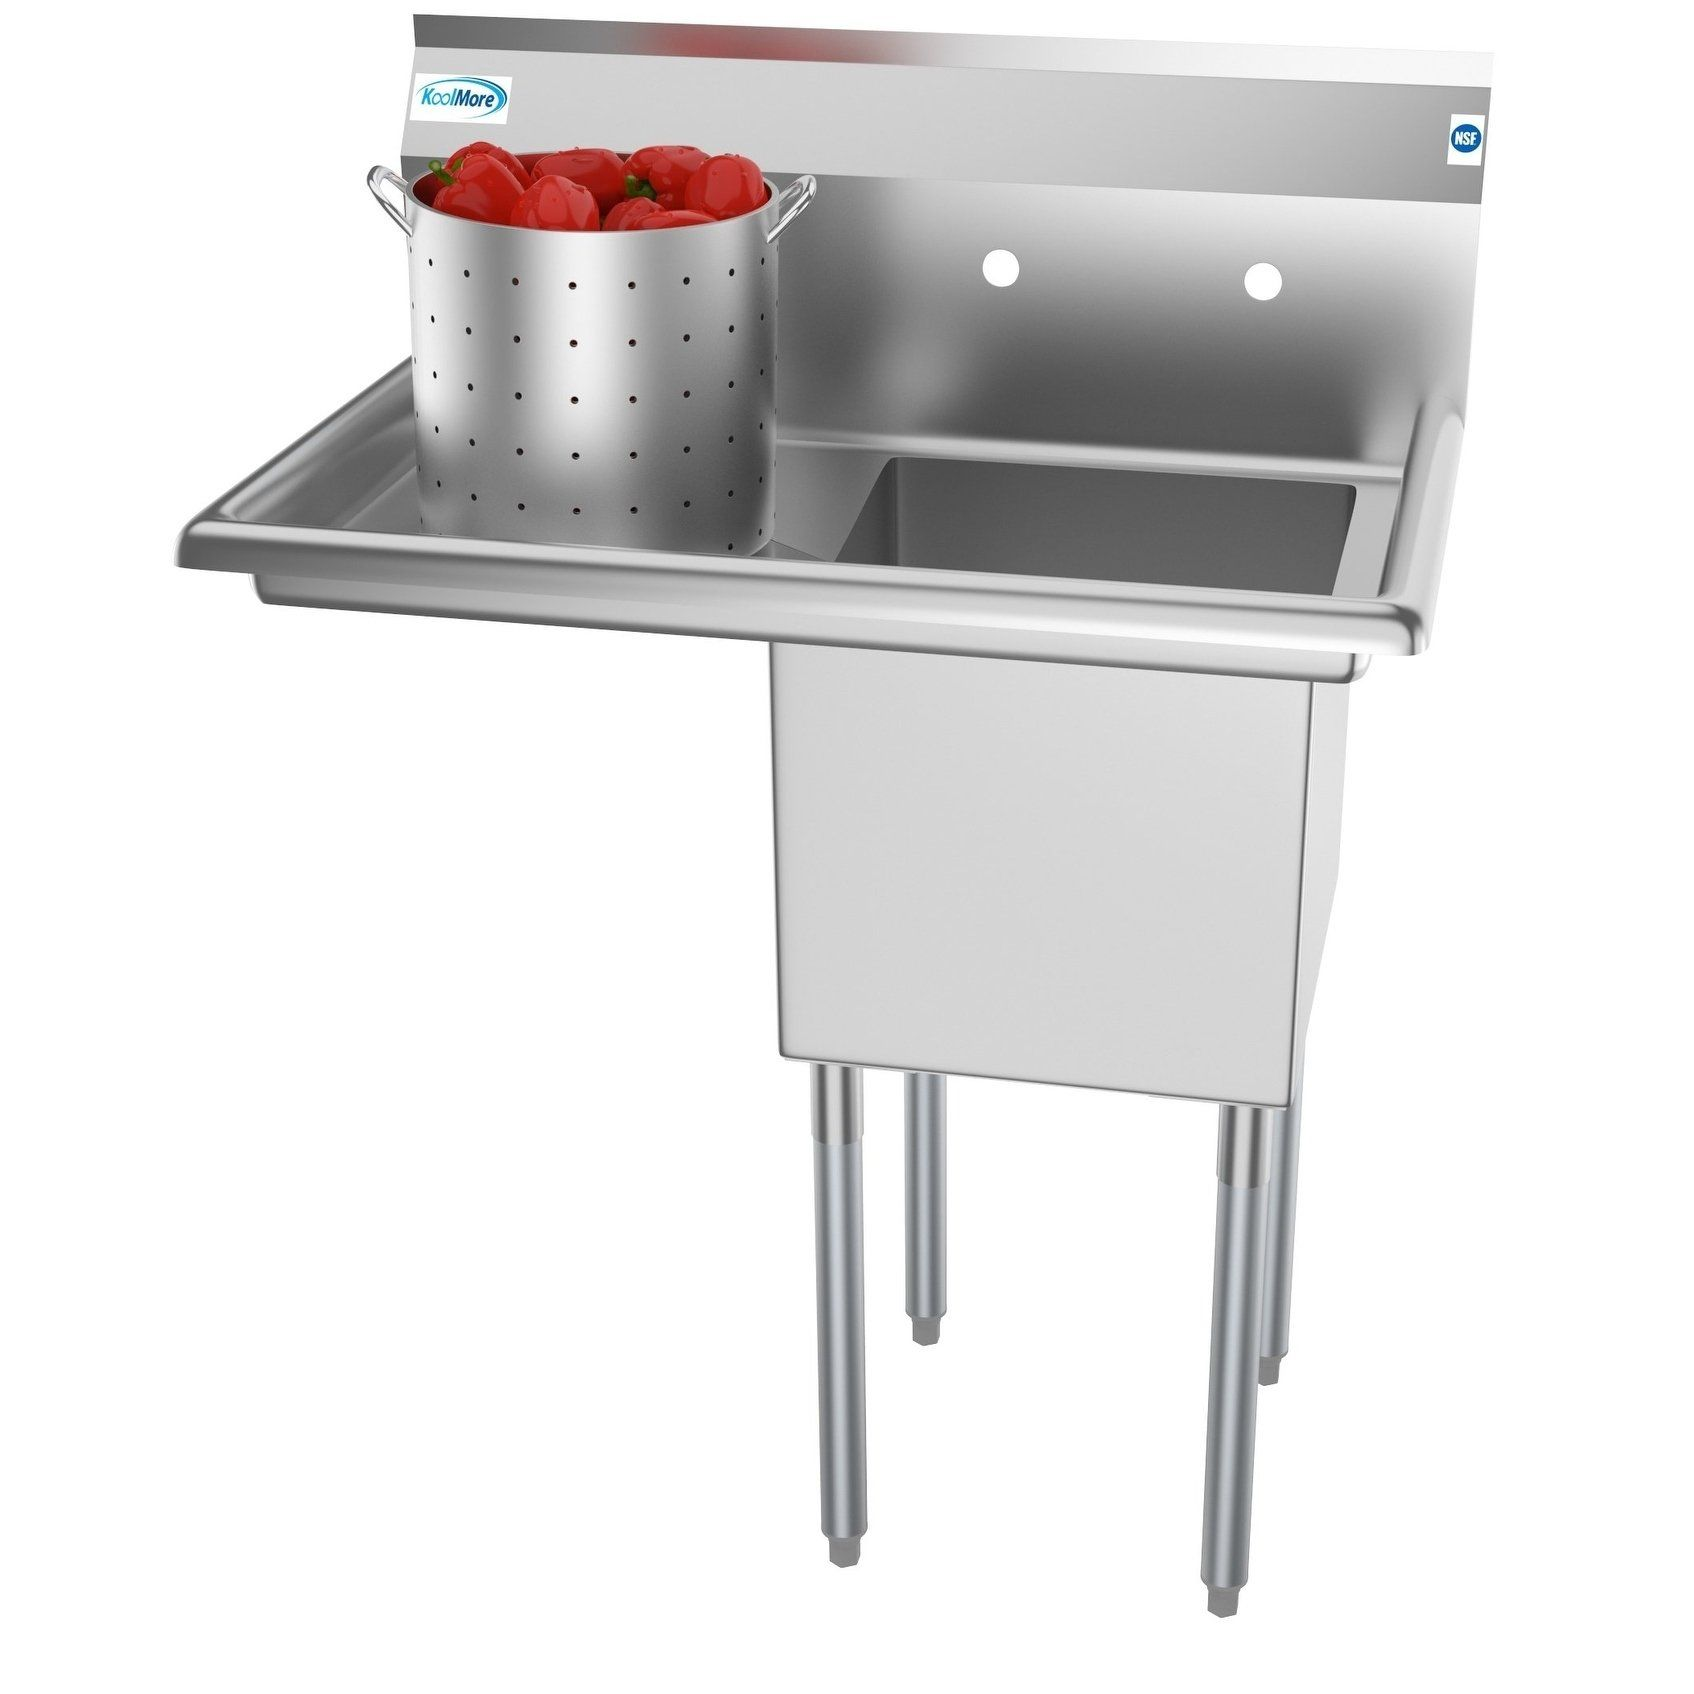 Koolmore 33 Inch Stainless Steel Commercial Kitchen Prep And